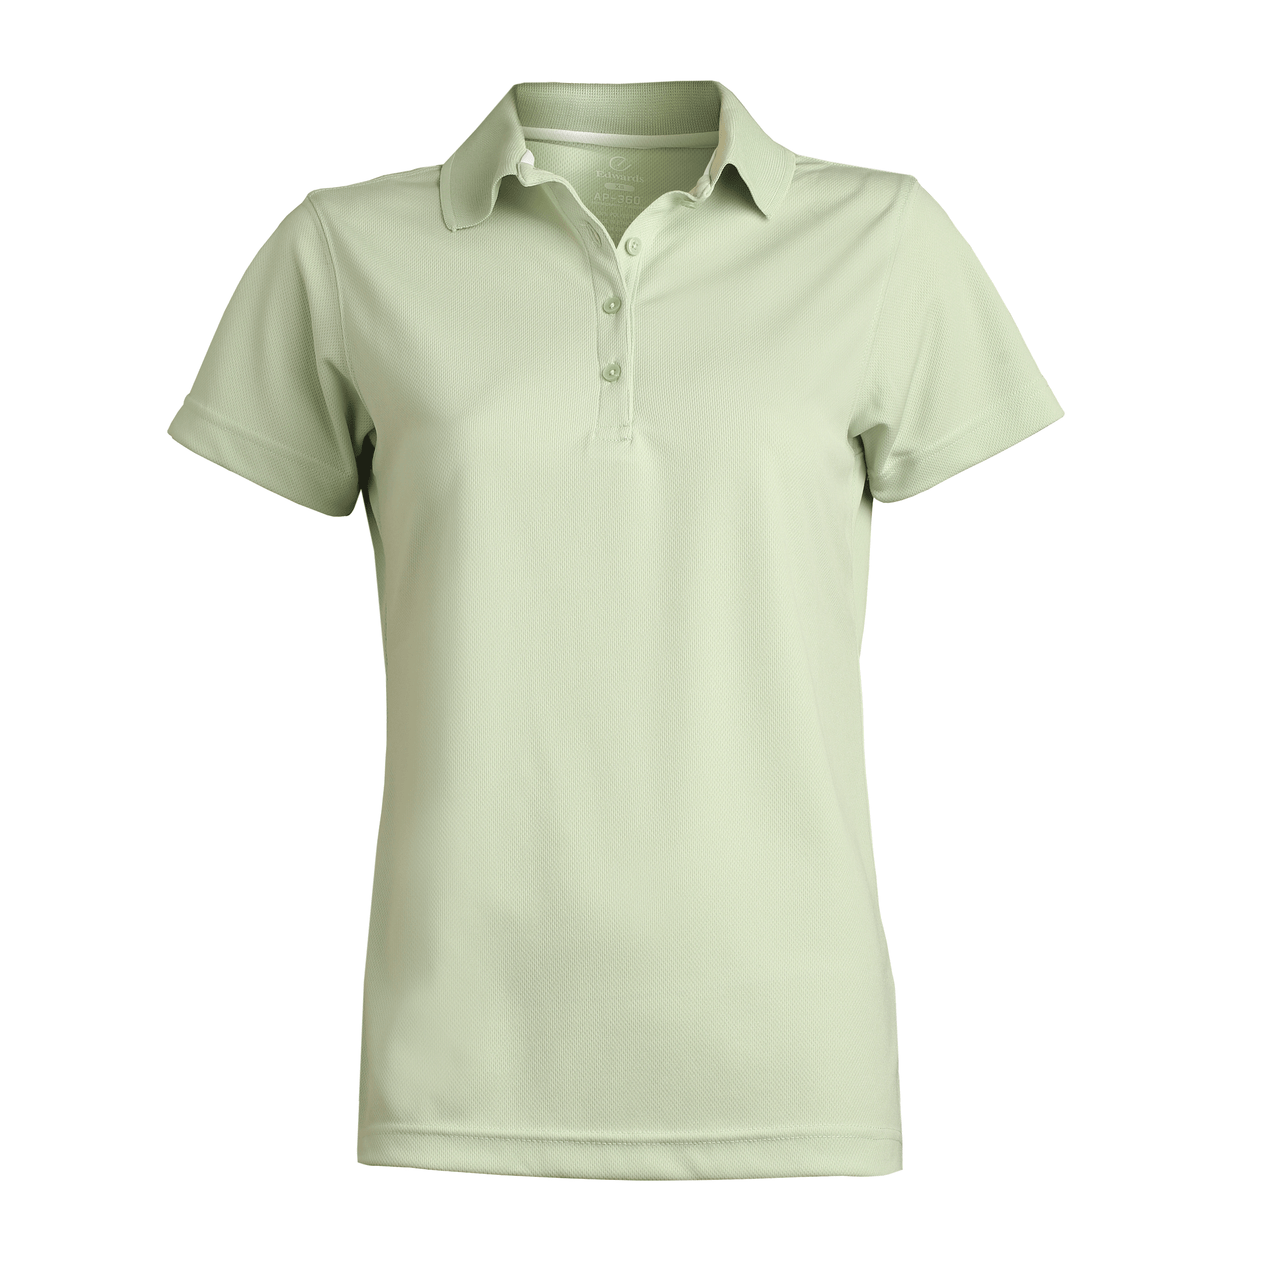 Ladies Soft Touch Pique Polo Shirt